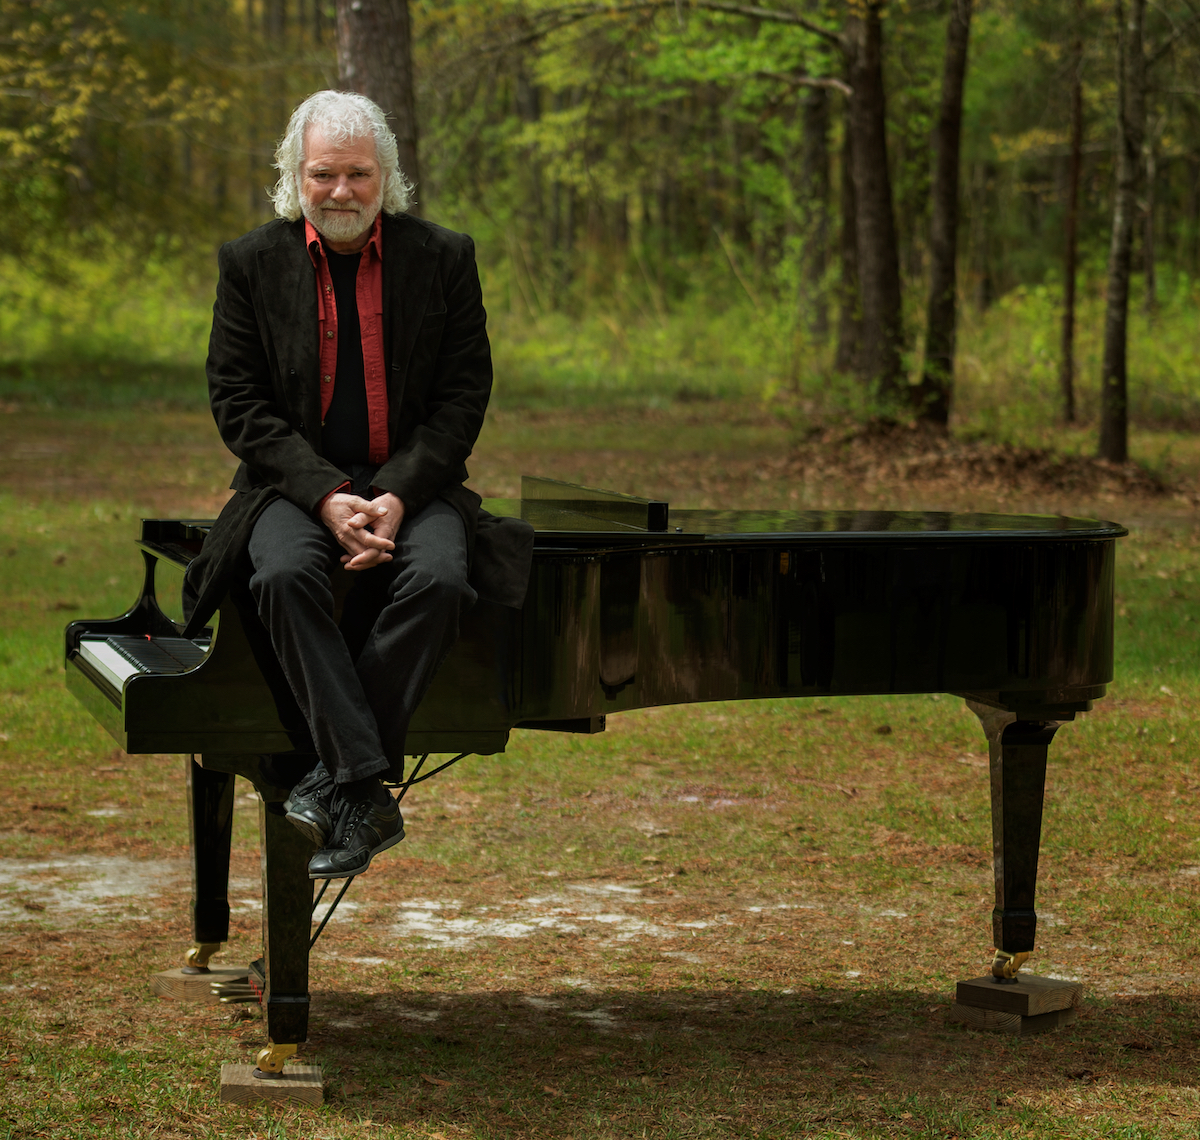 Chuck Leavell sitting on piano in field.